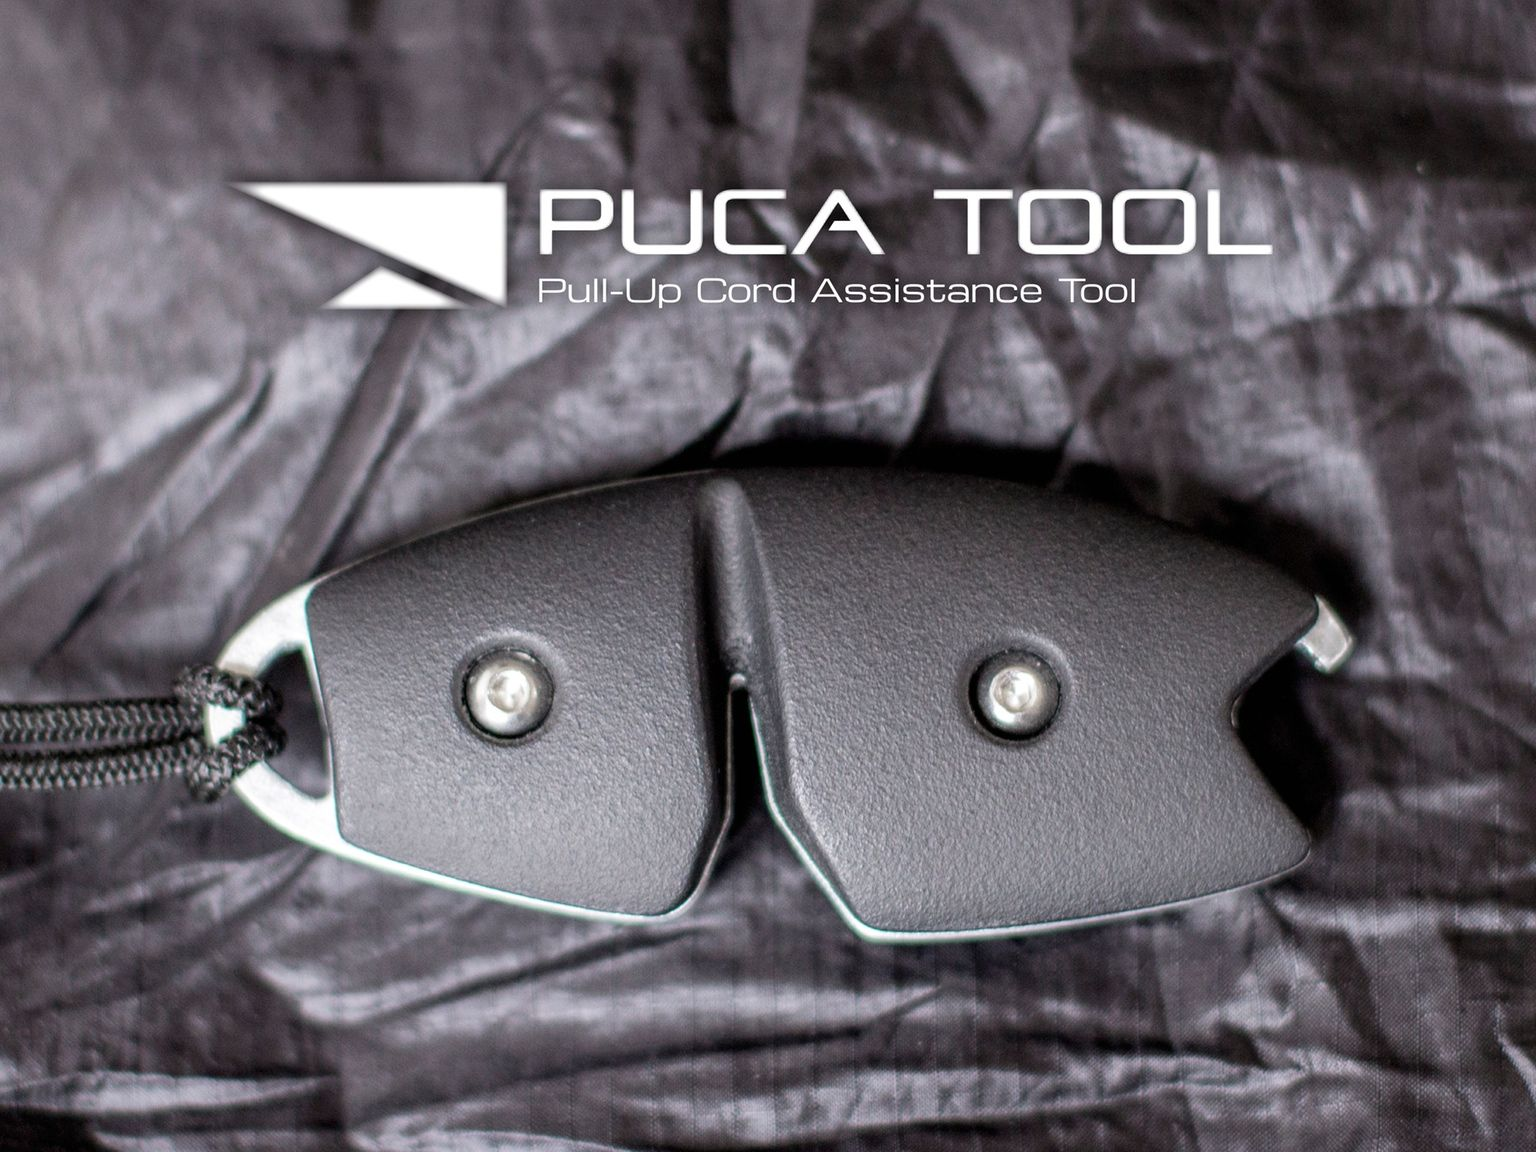 Puca Tool Tools And Equipment Tools Personalized Items